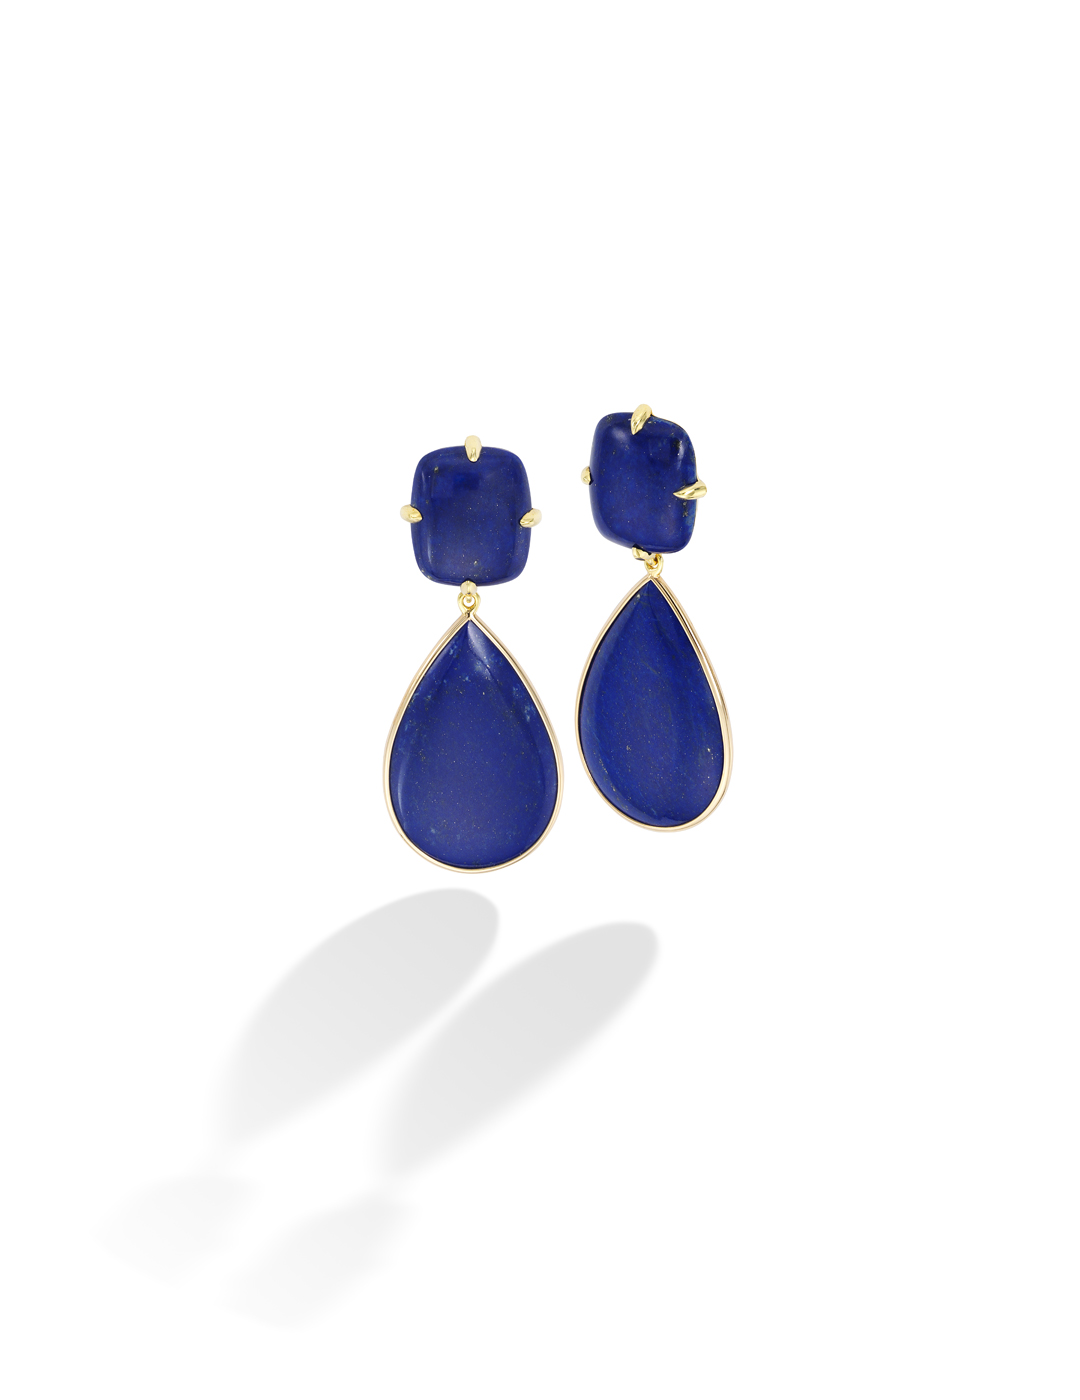 mish_products_earrings_Roadster-Lapis-ER-1